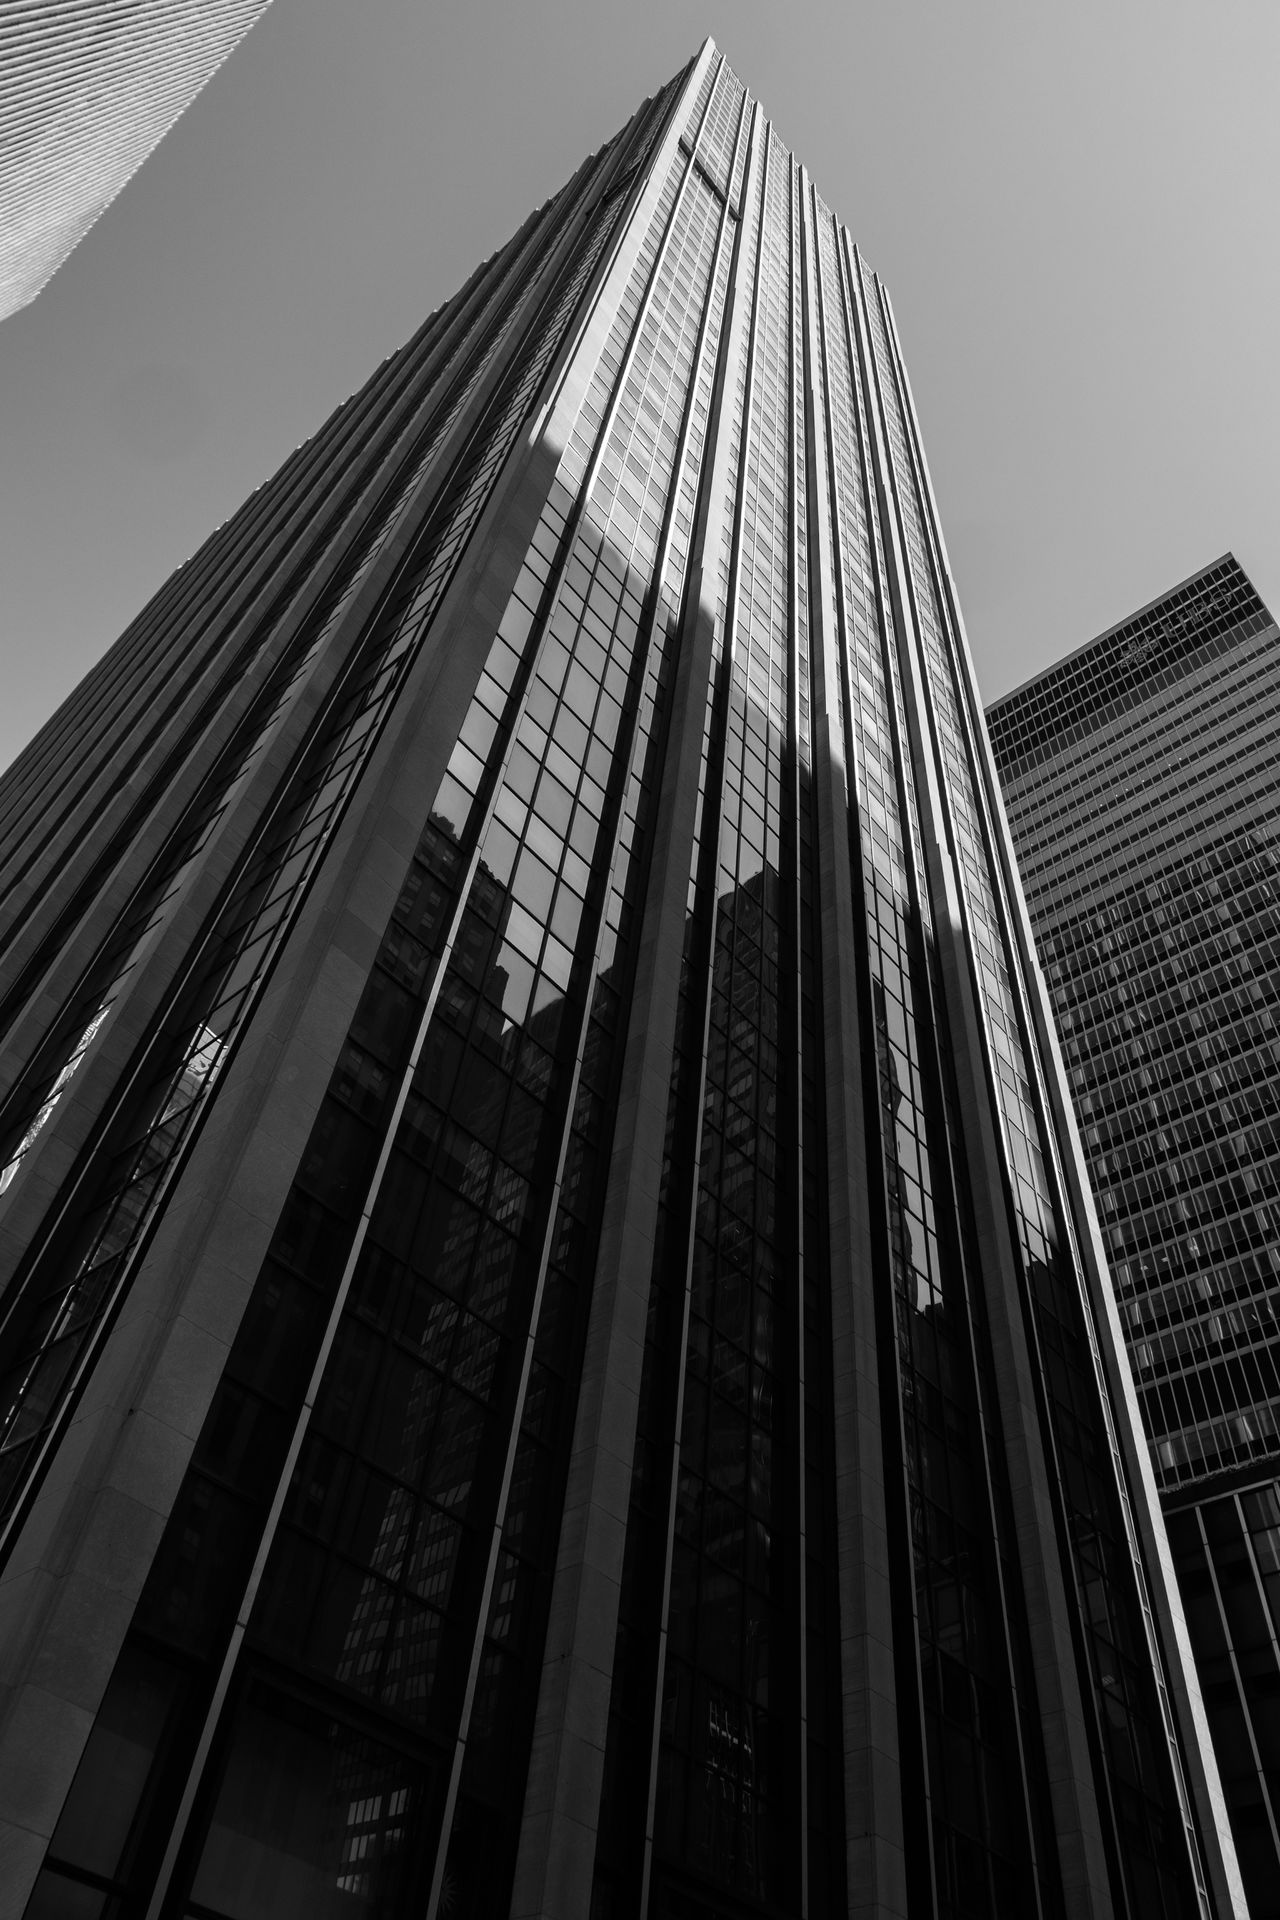 New York City skyscraper Architecture Building Exterior Built Structure City Clear Sky Day Façade Infrastructure Low Angle View Modern Monotone No People Outdoors Sky Skyscraper